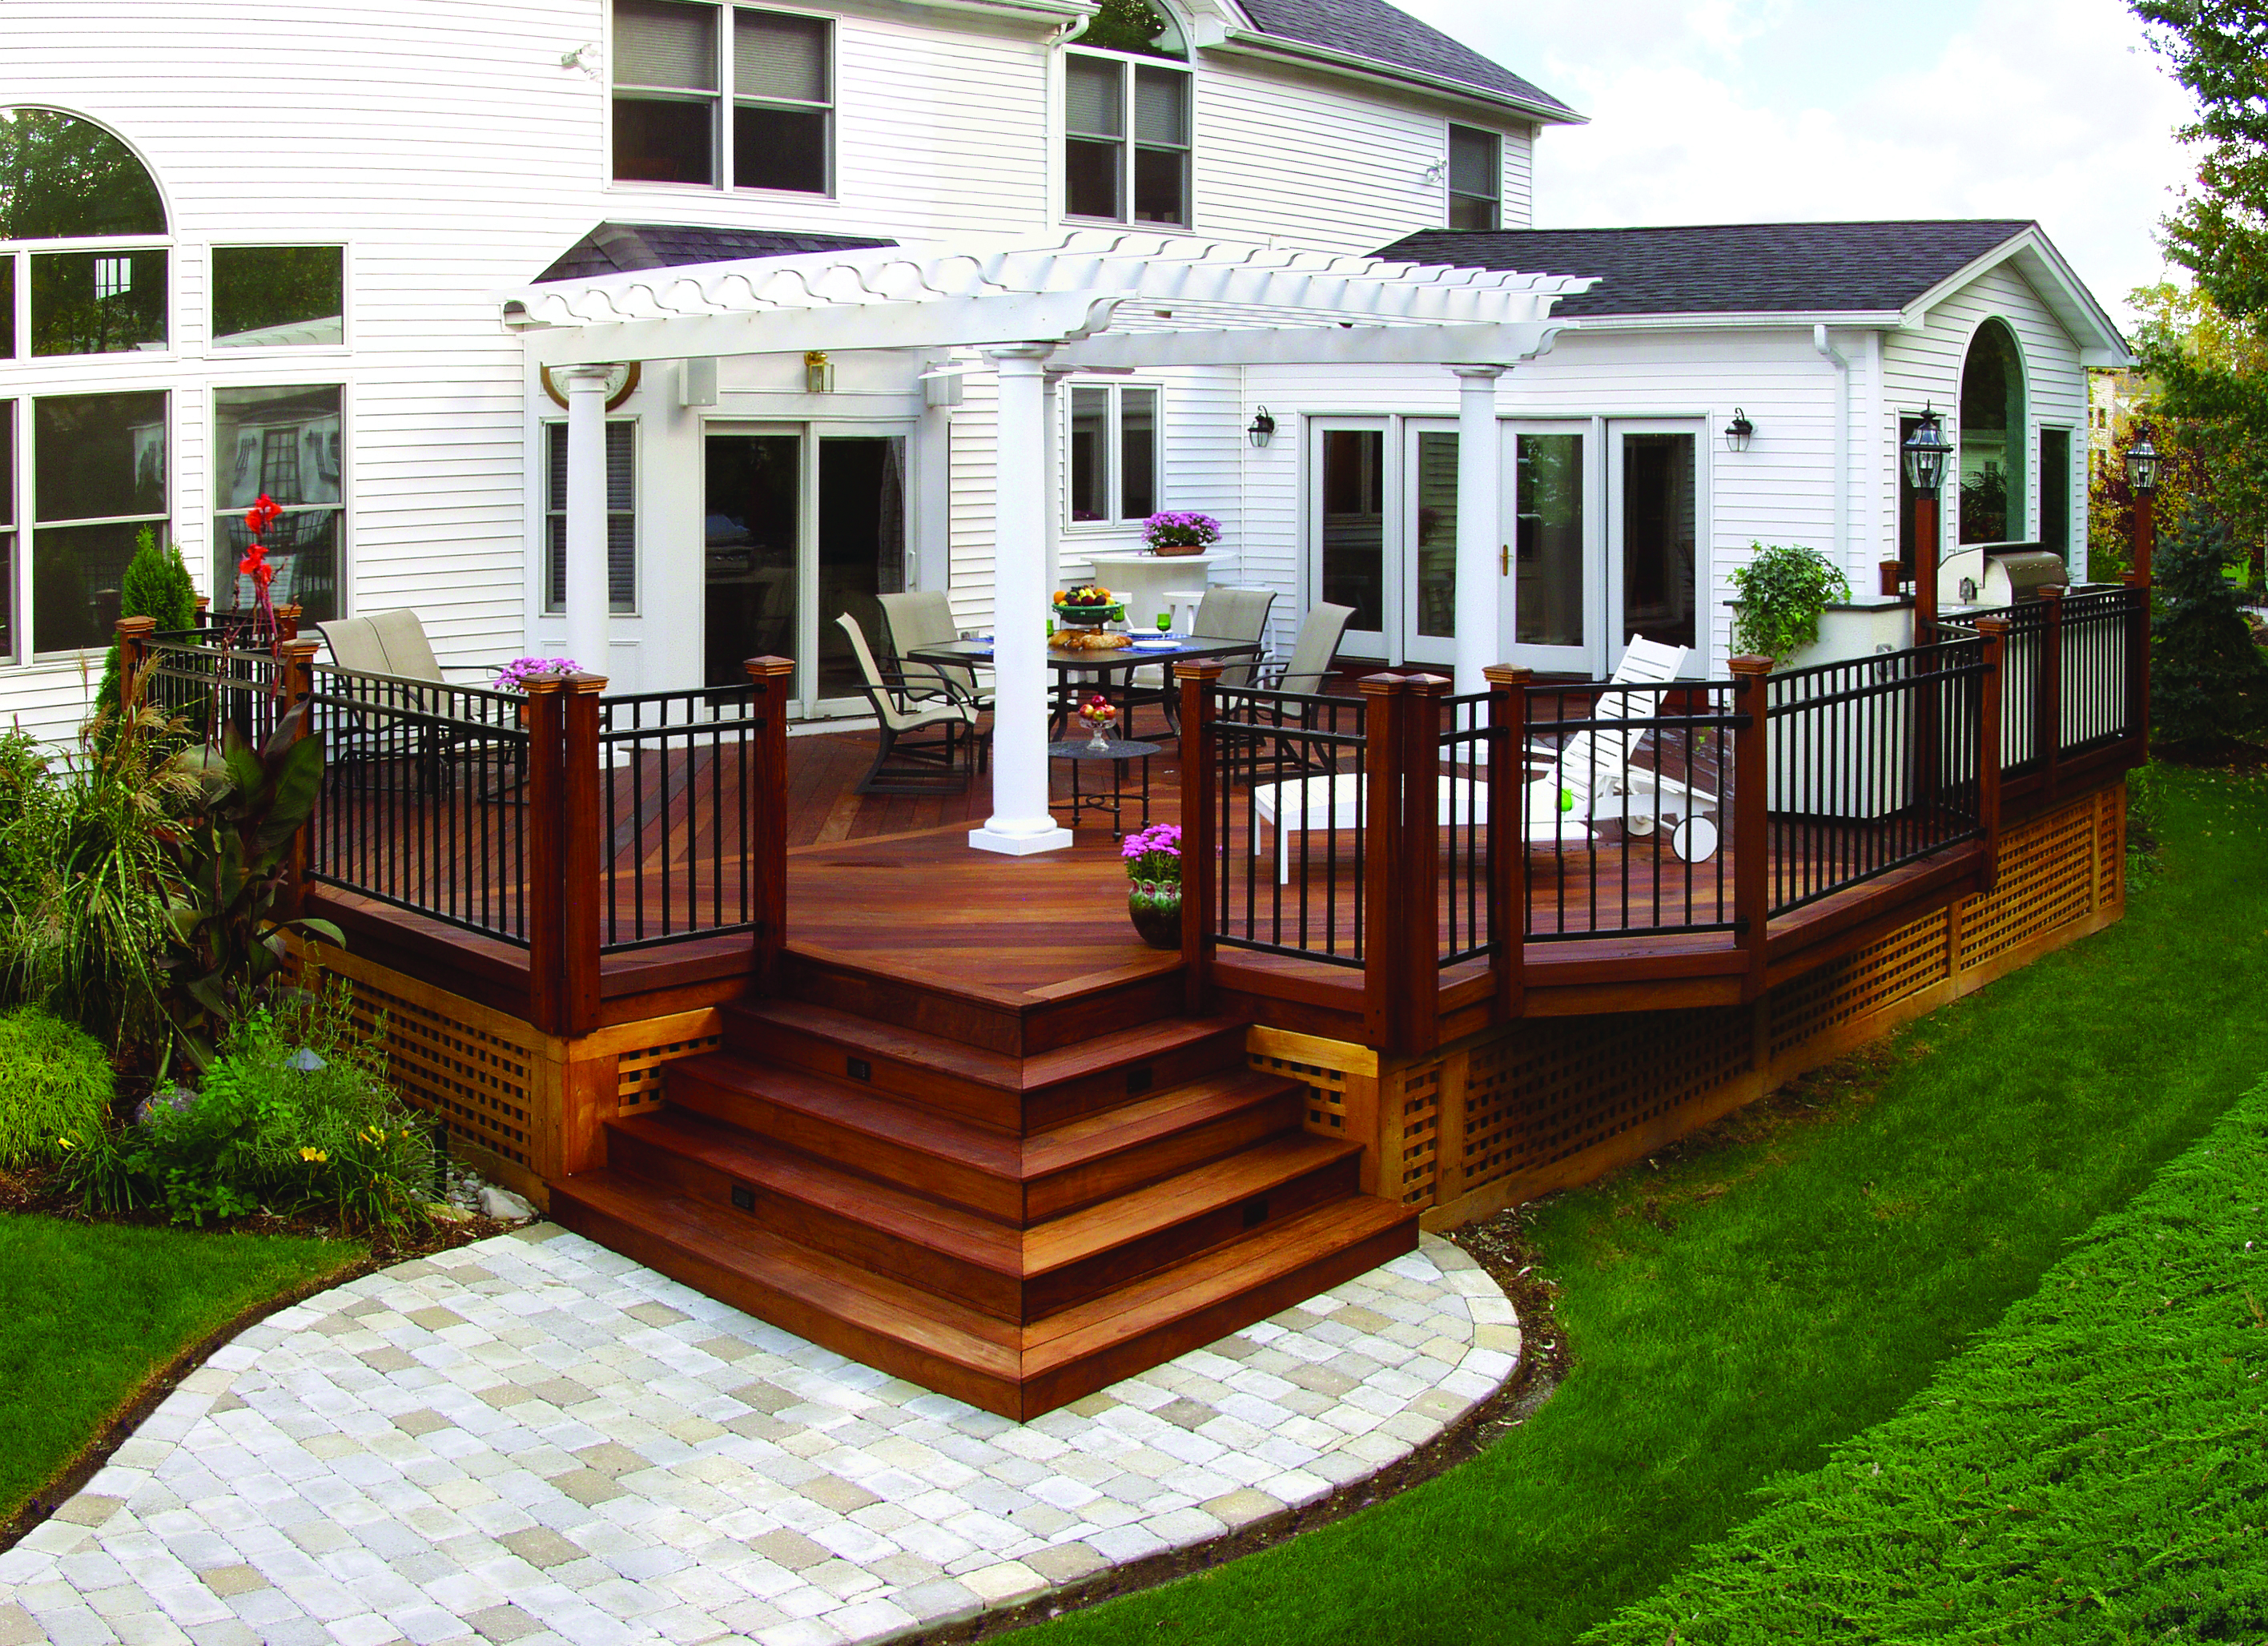 Pergola's Make A Great Addition To Any Raleigh Deck Or Patio